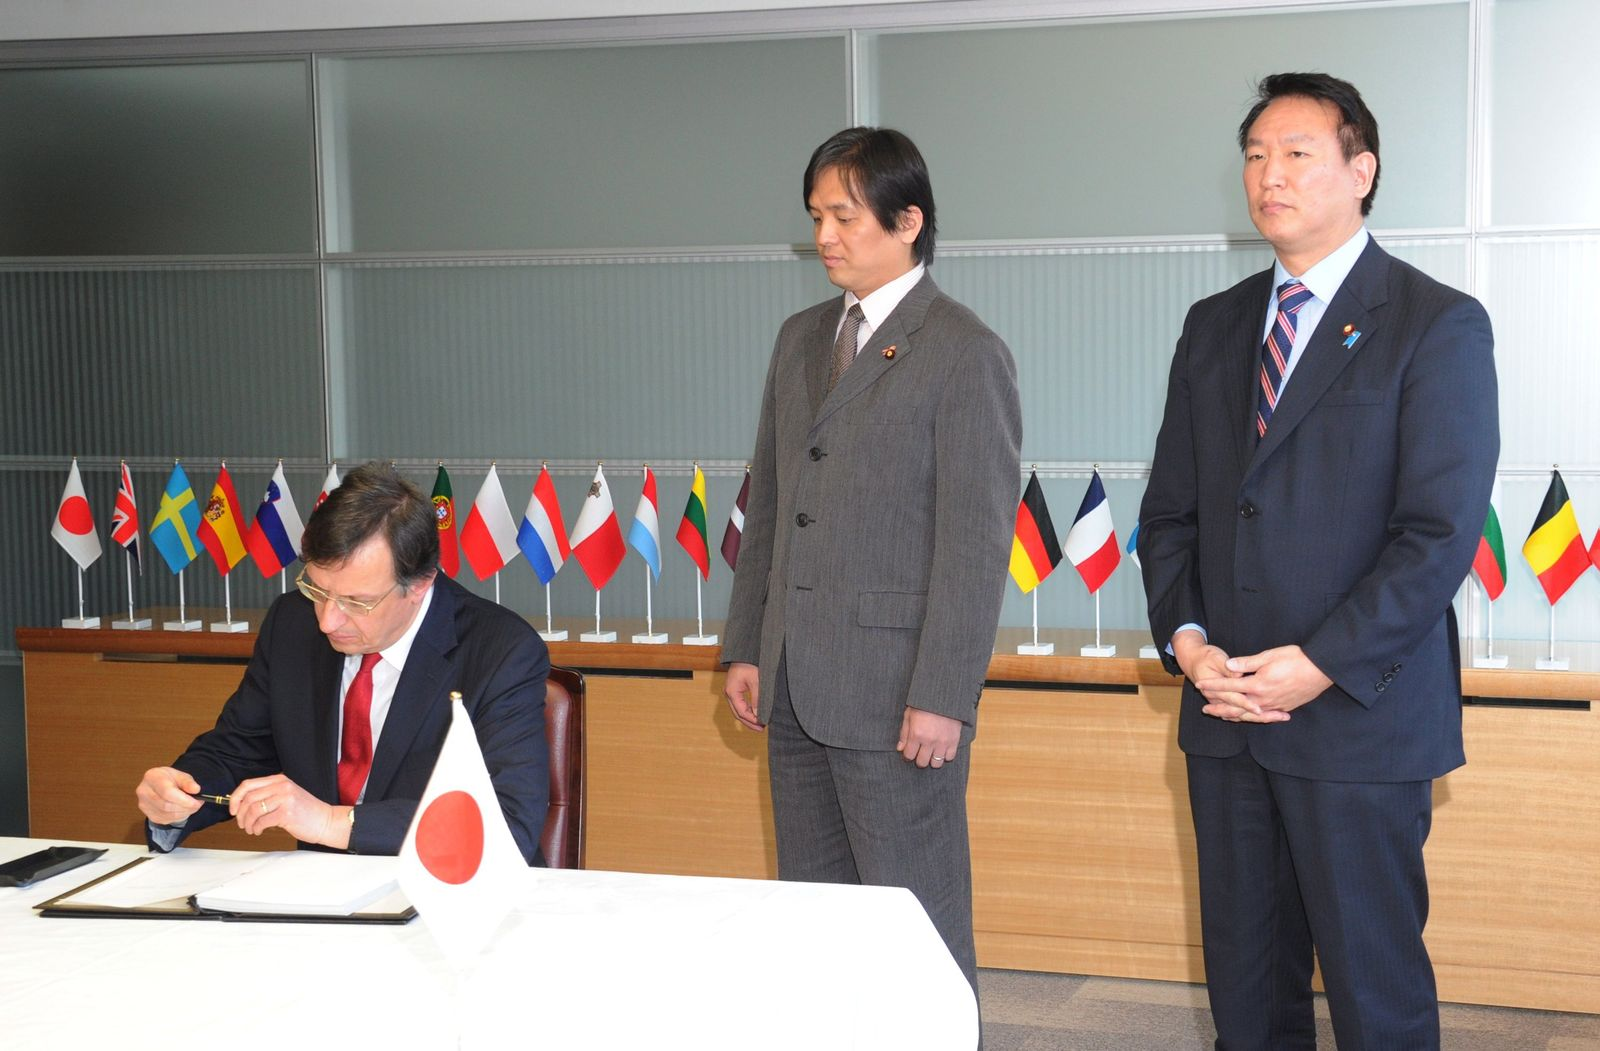 ACTA (Anti-counterfeiting trade agreement) signing in Tokyo